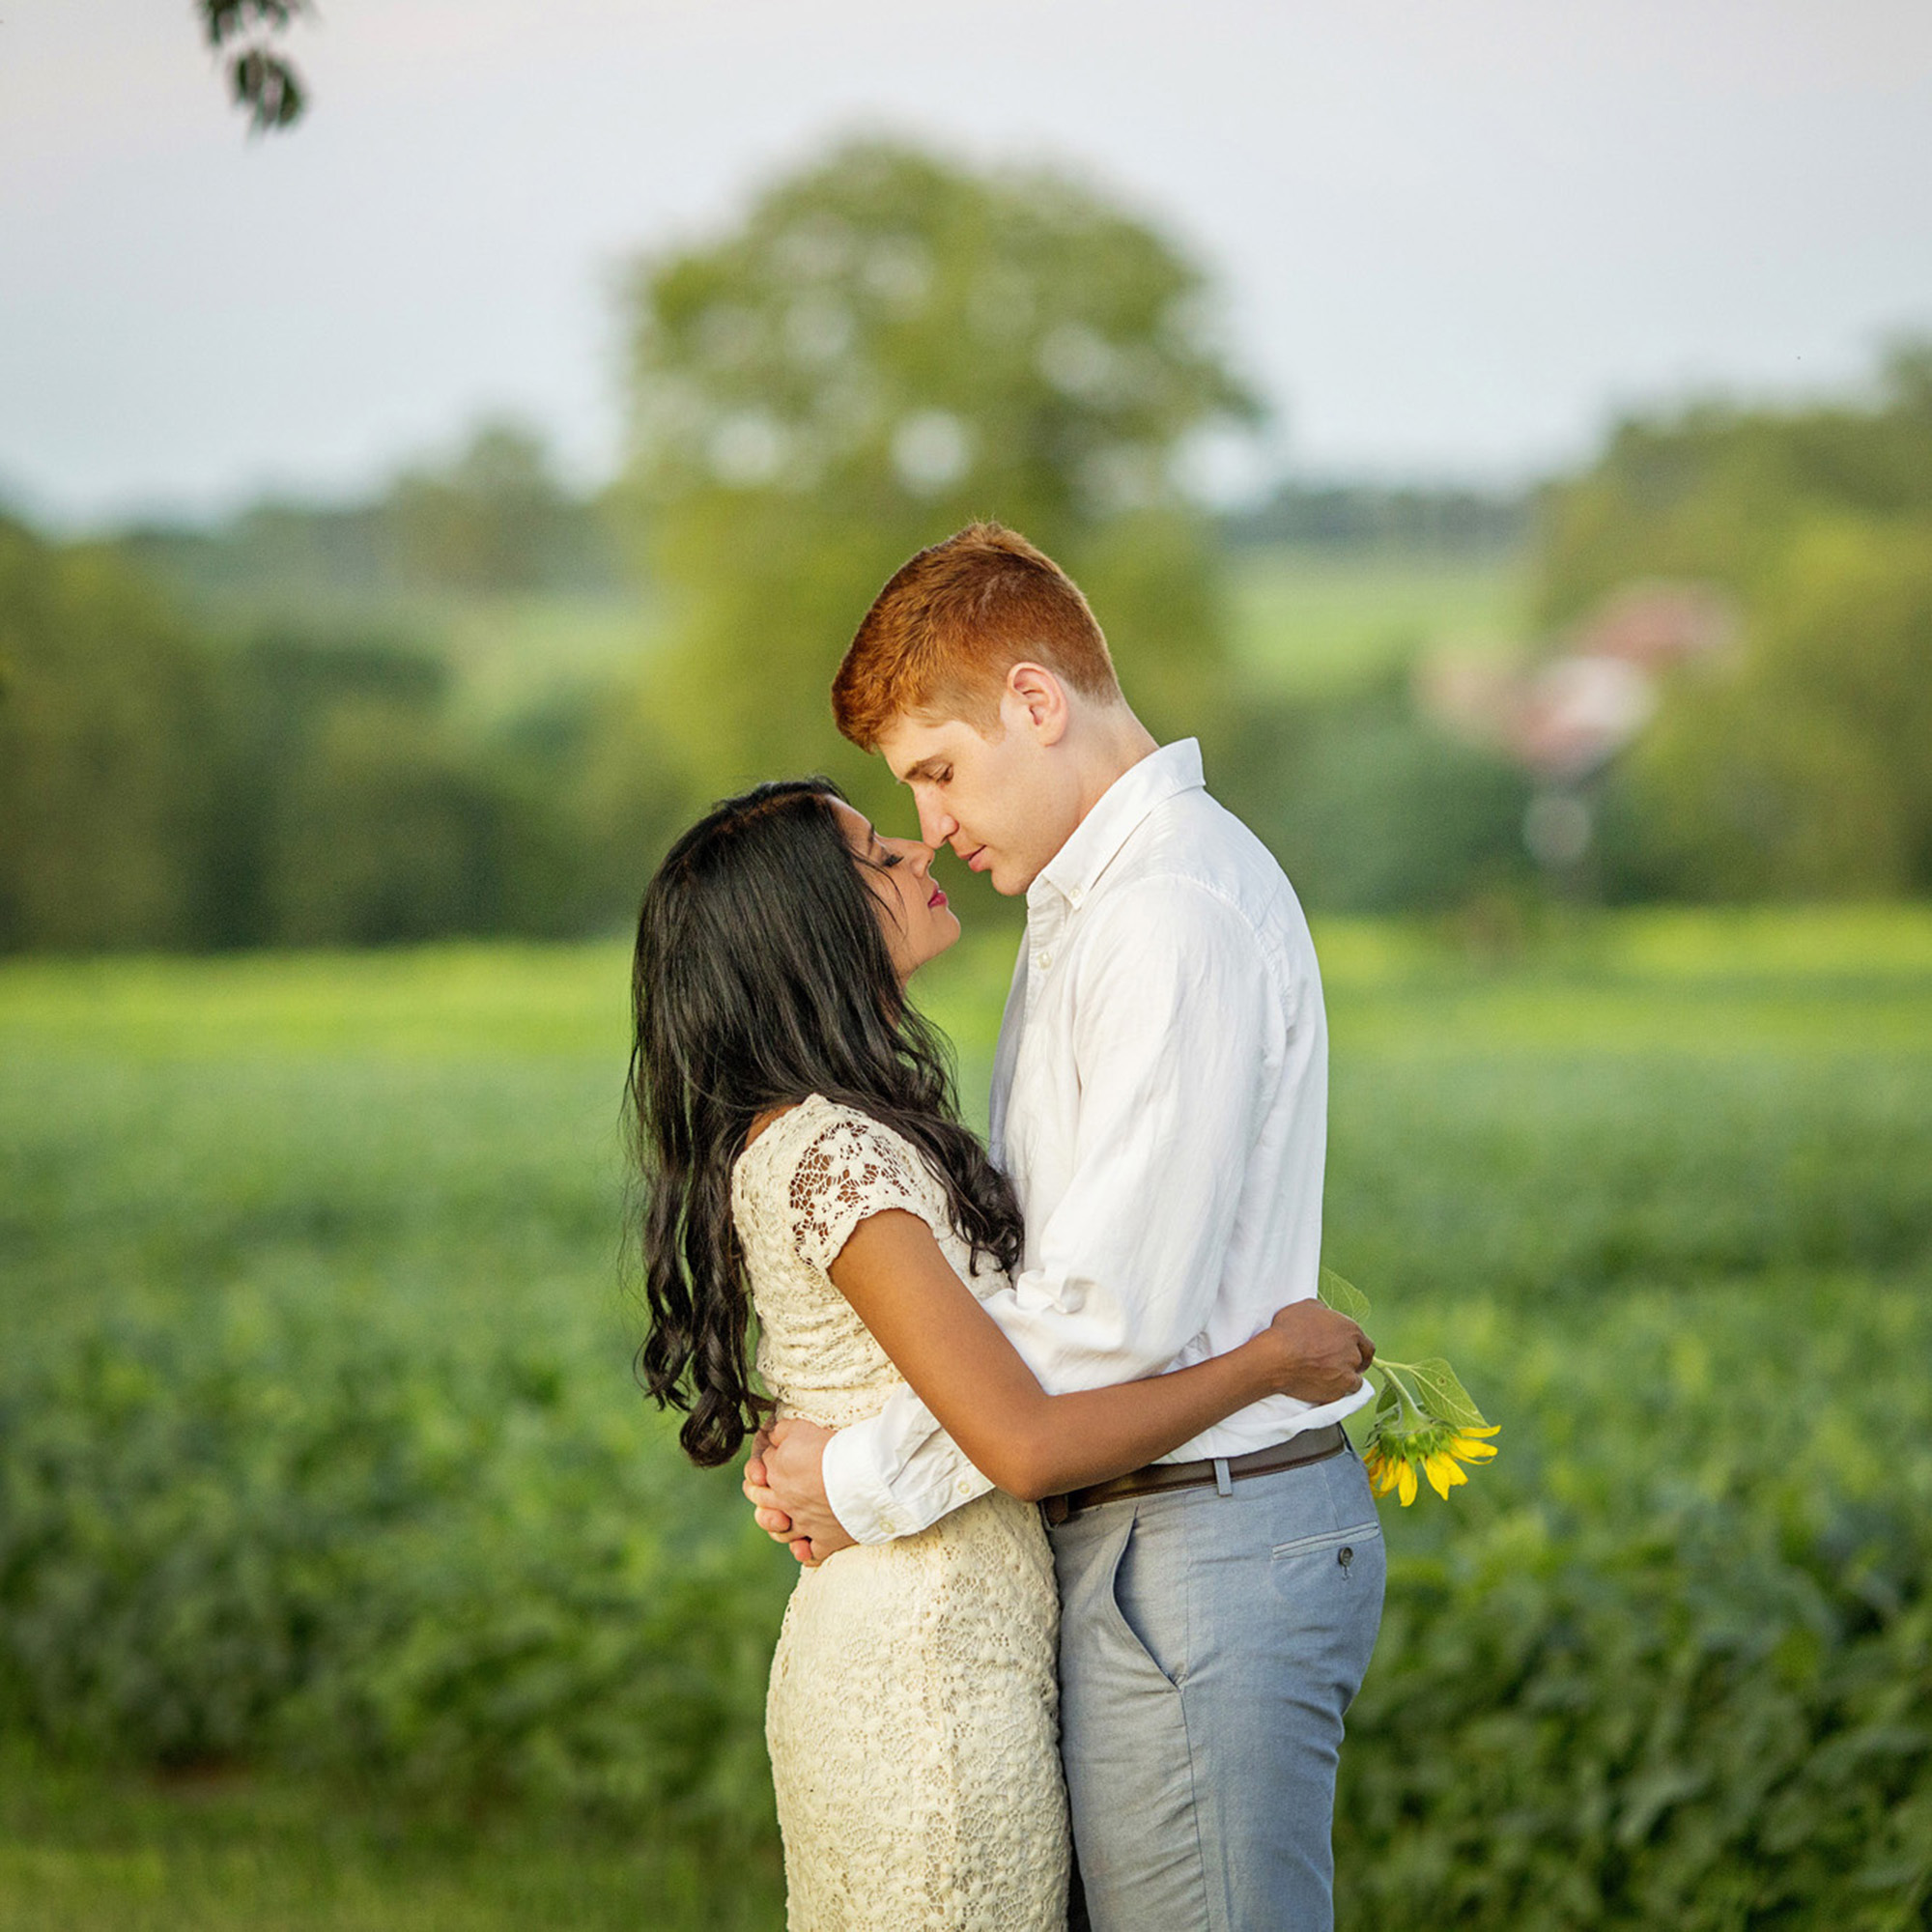 Seriously_Sabrina_Photography_Lexington_Midway_Kentucky_Engagement_Merefield_Sunflowers_Naz_and_Drew26.jpg